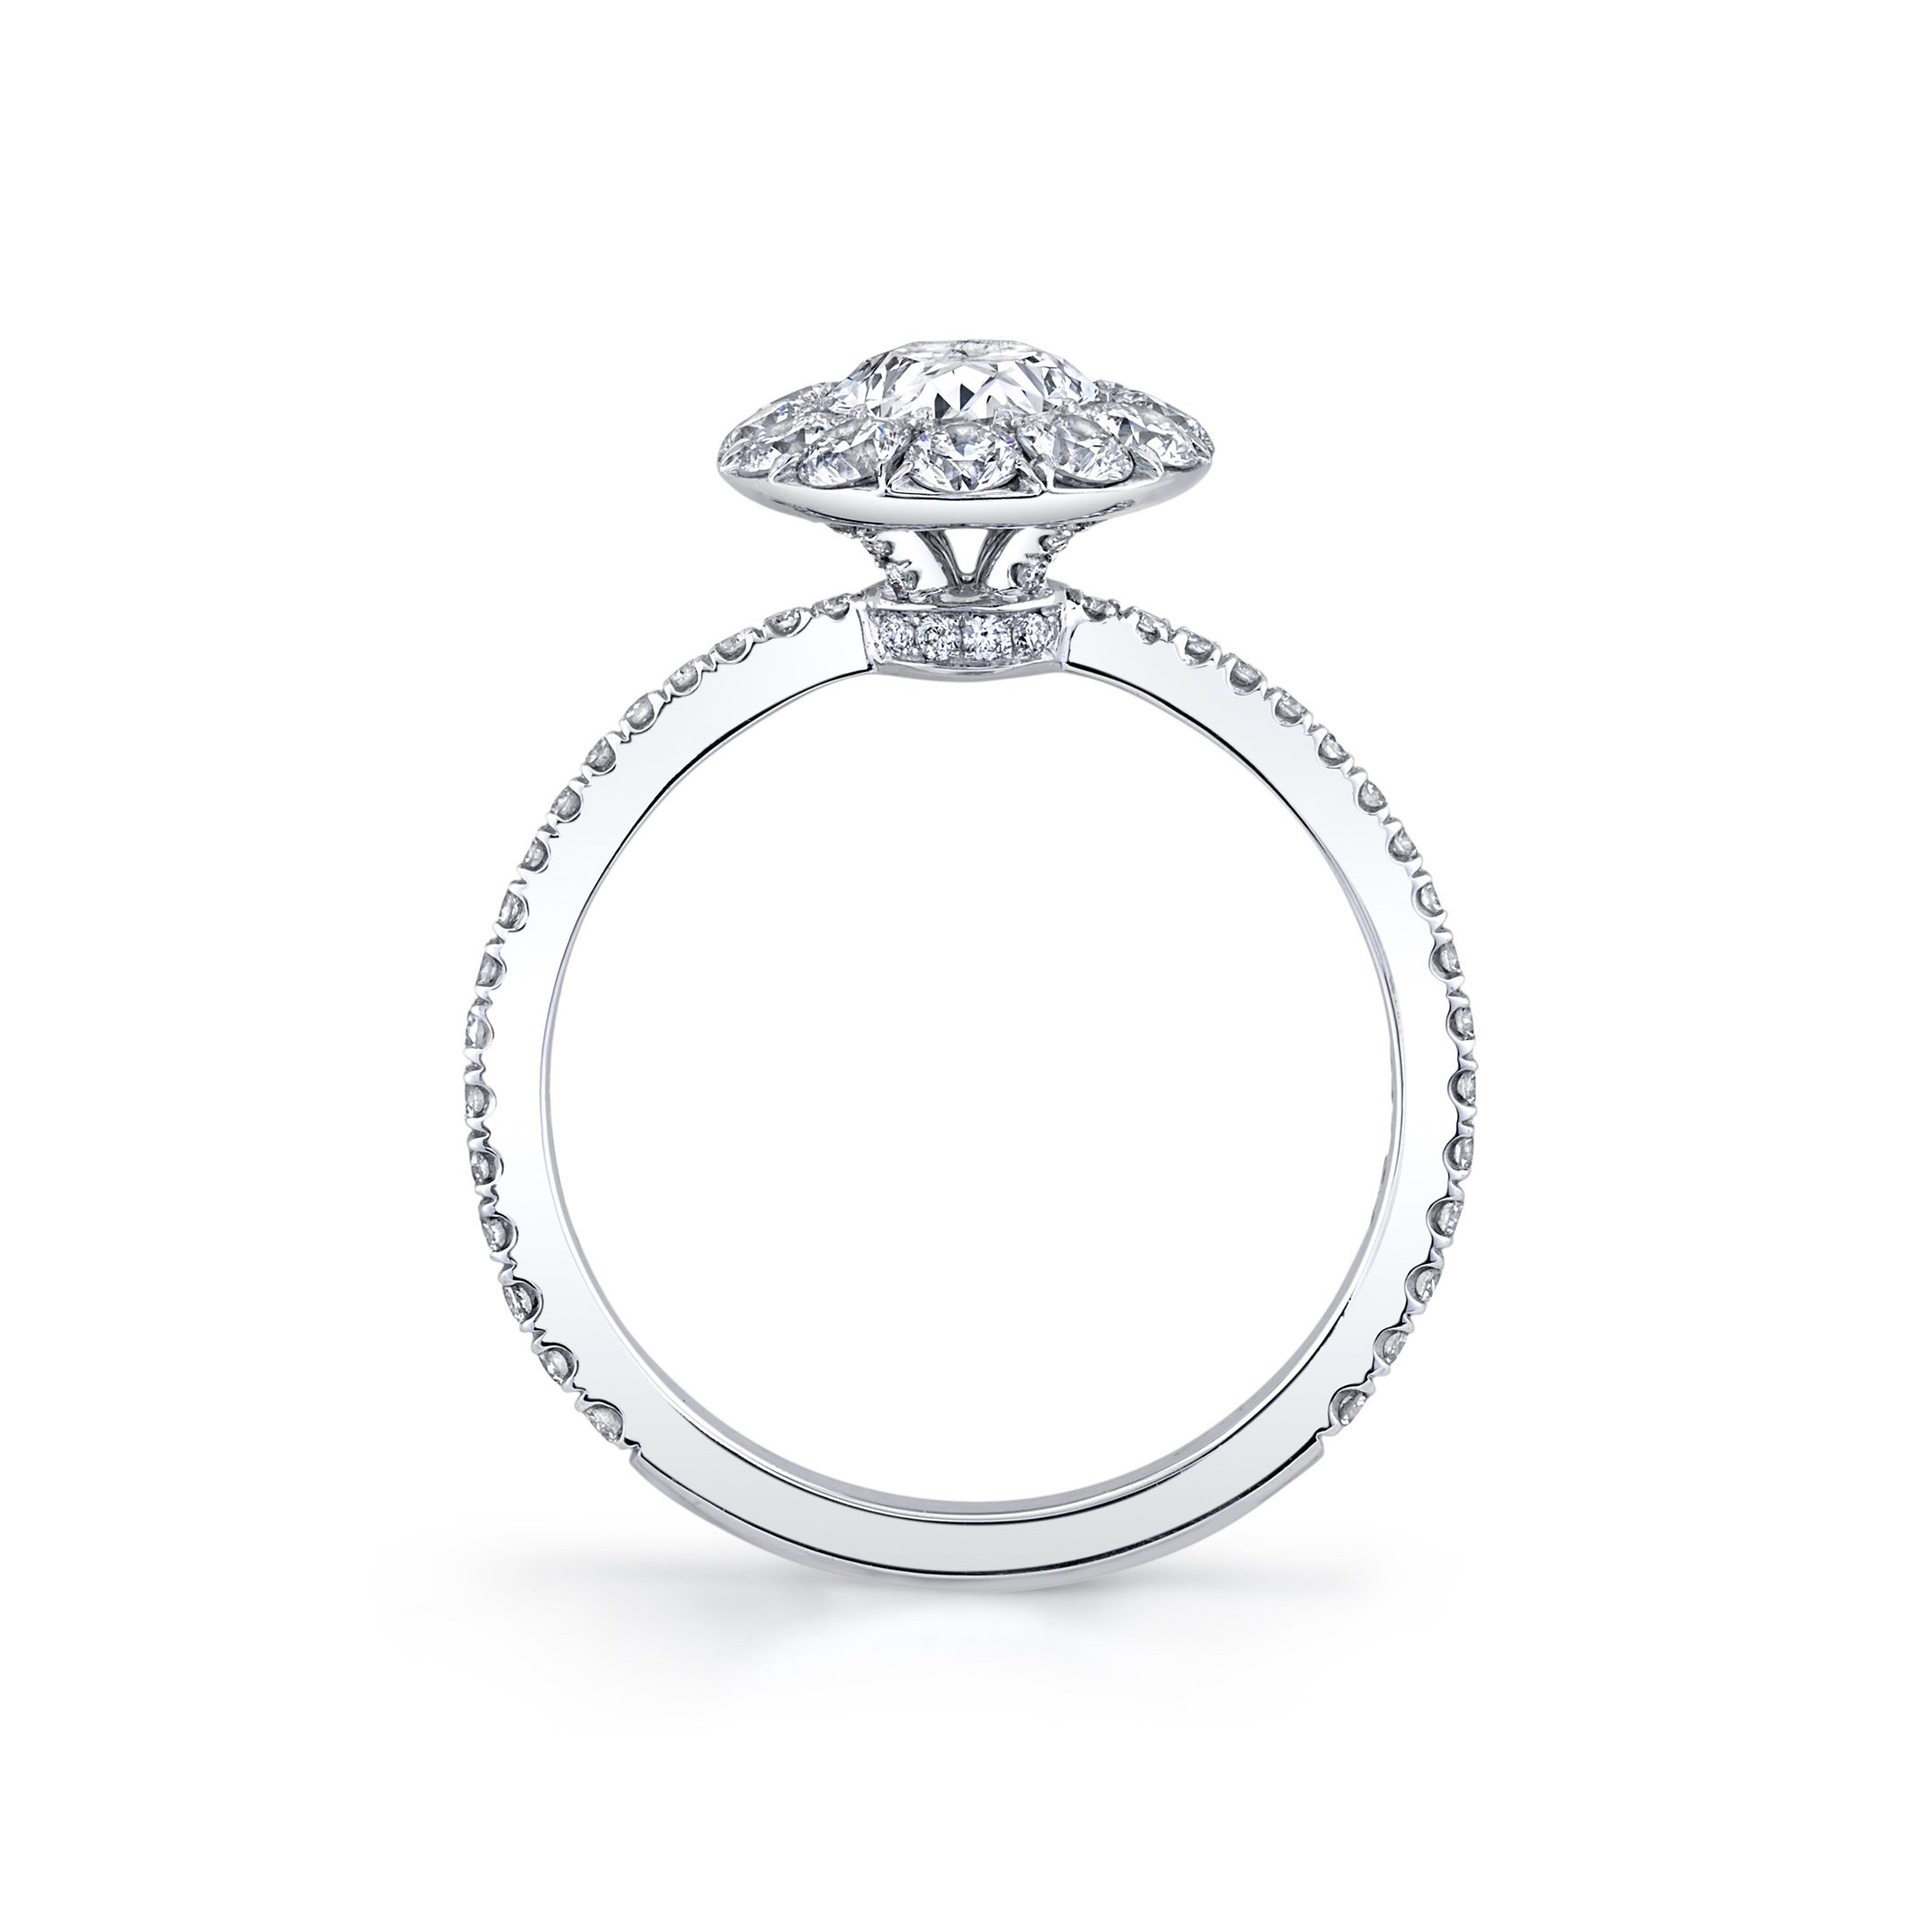 Eloise Floating Oval Seamless Solitaire® Engagement Ring with diamond pavé in 18k White Gold Standing View by Oui by Jean Dousset